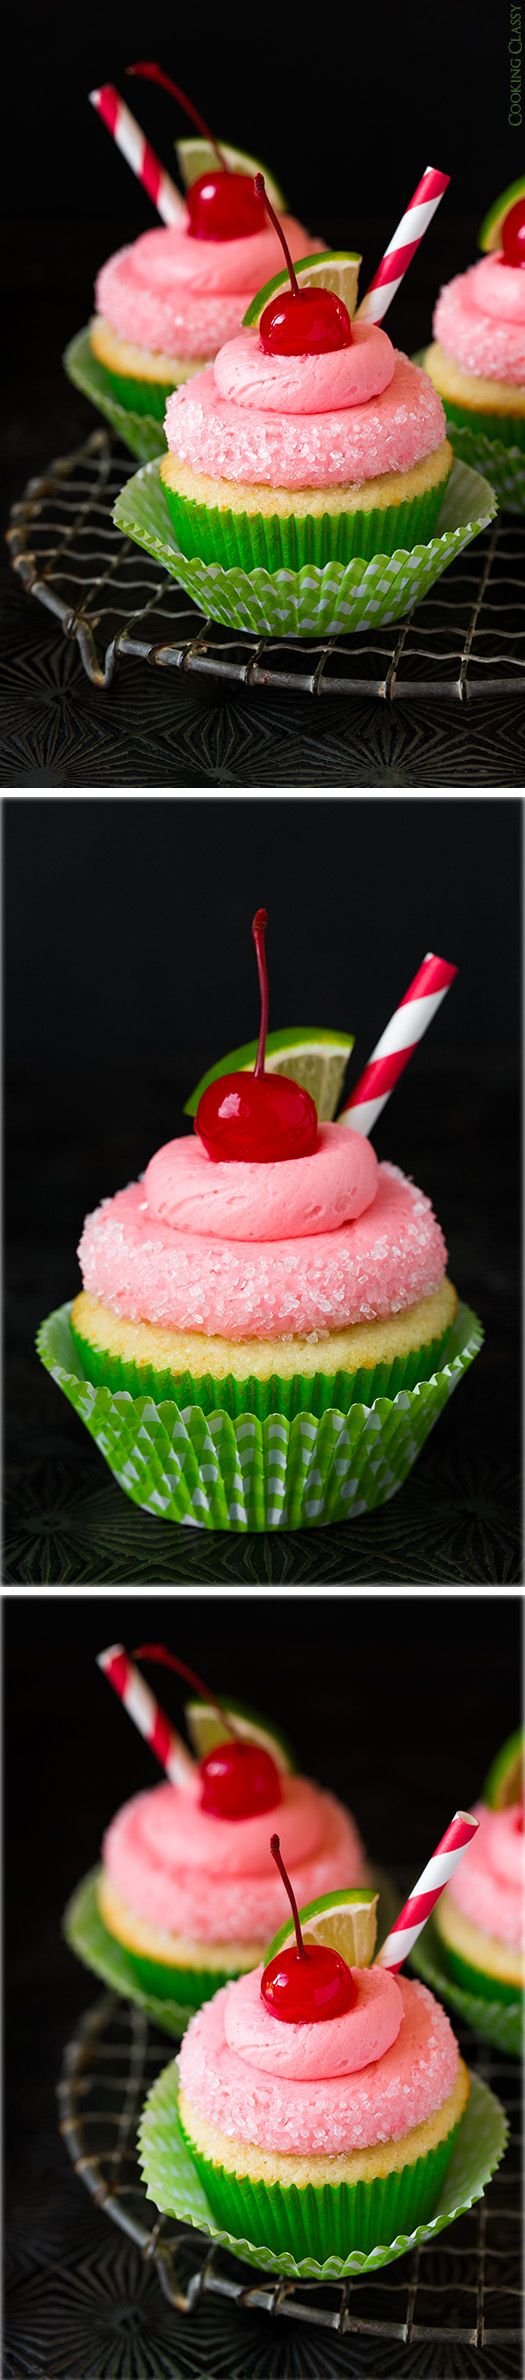 Cherry Limemade Cupcakes - these cupcakes are delicious and so fun for summer!!